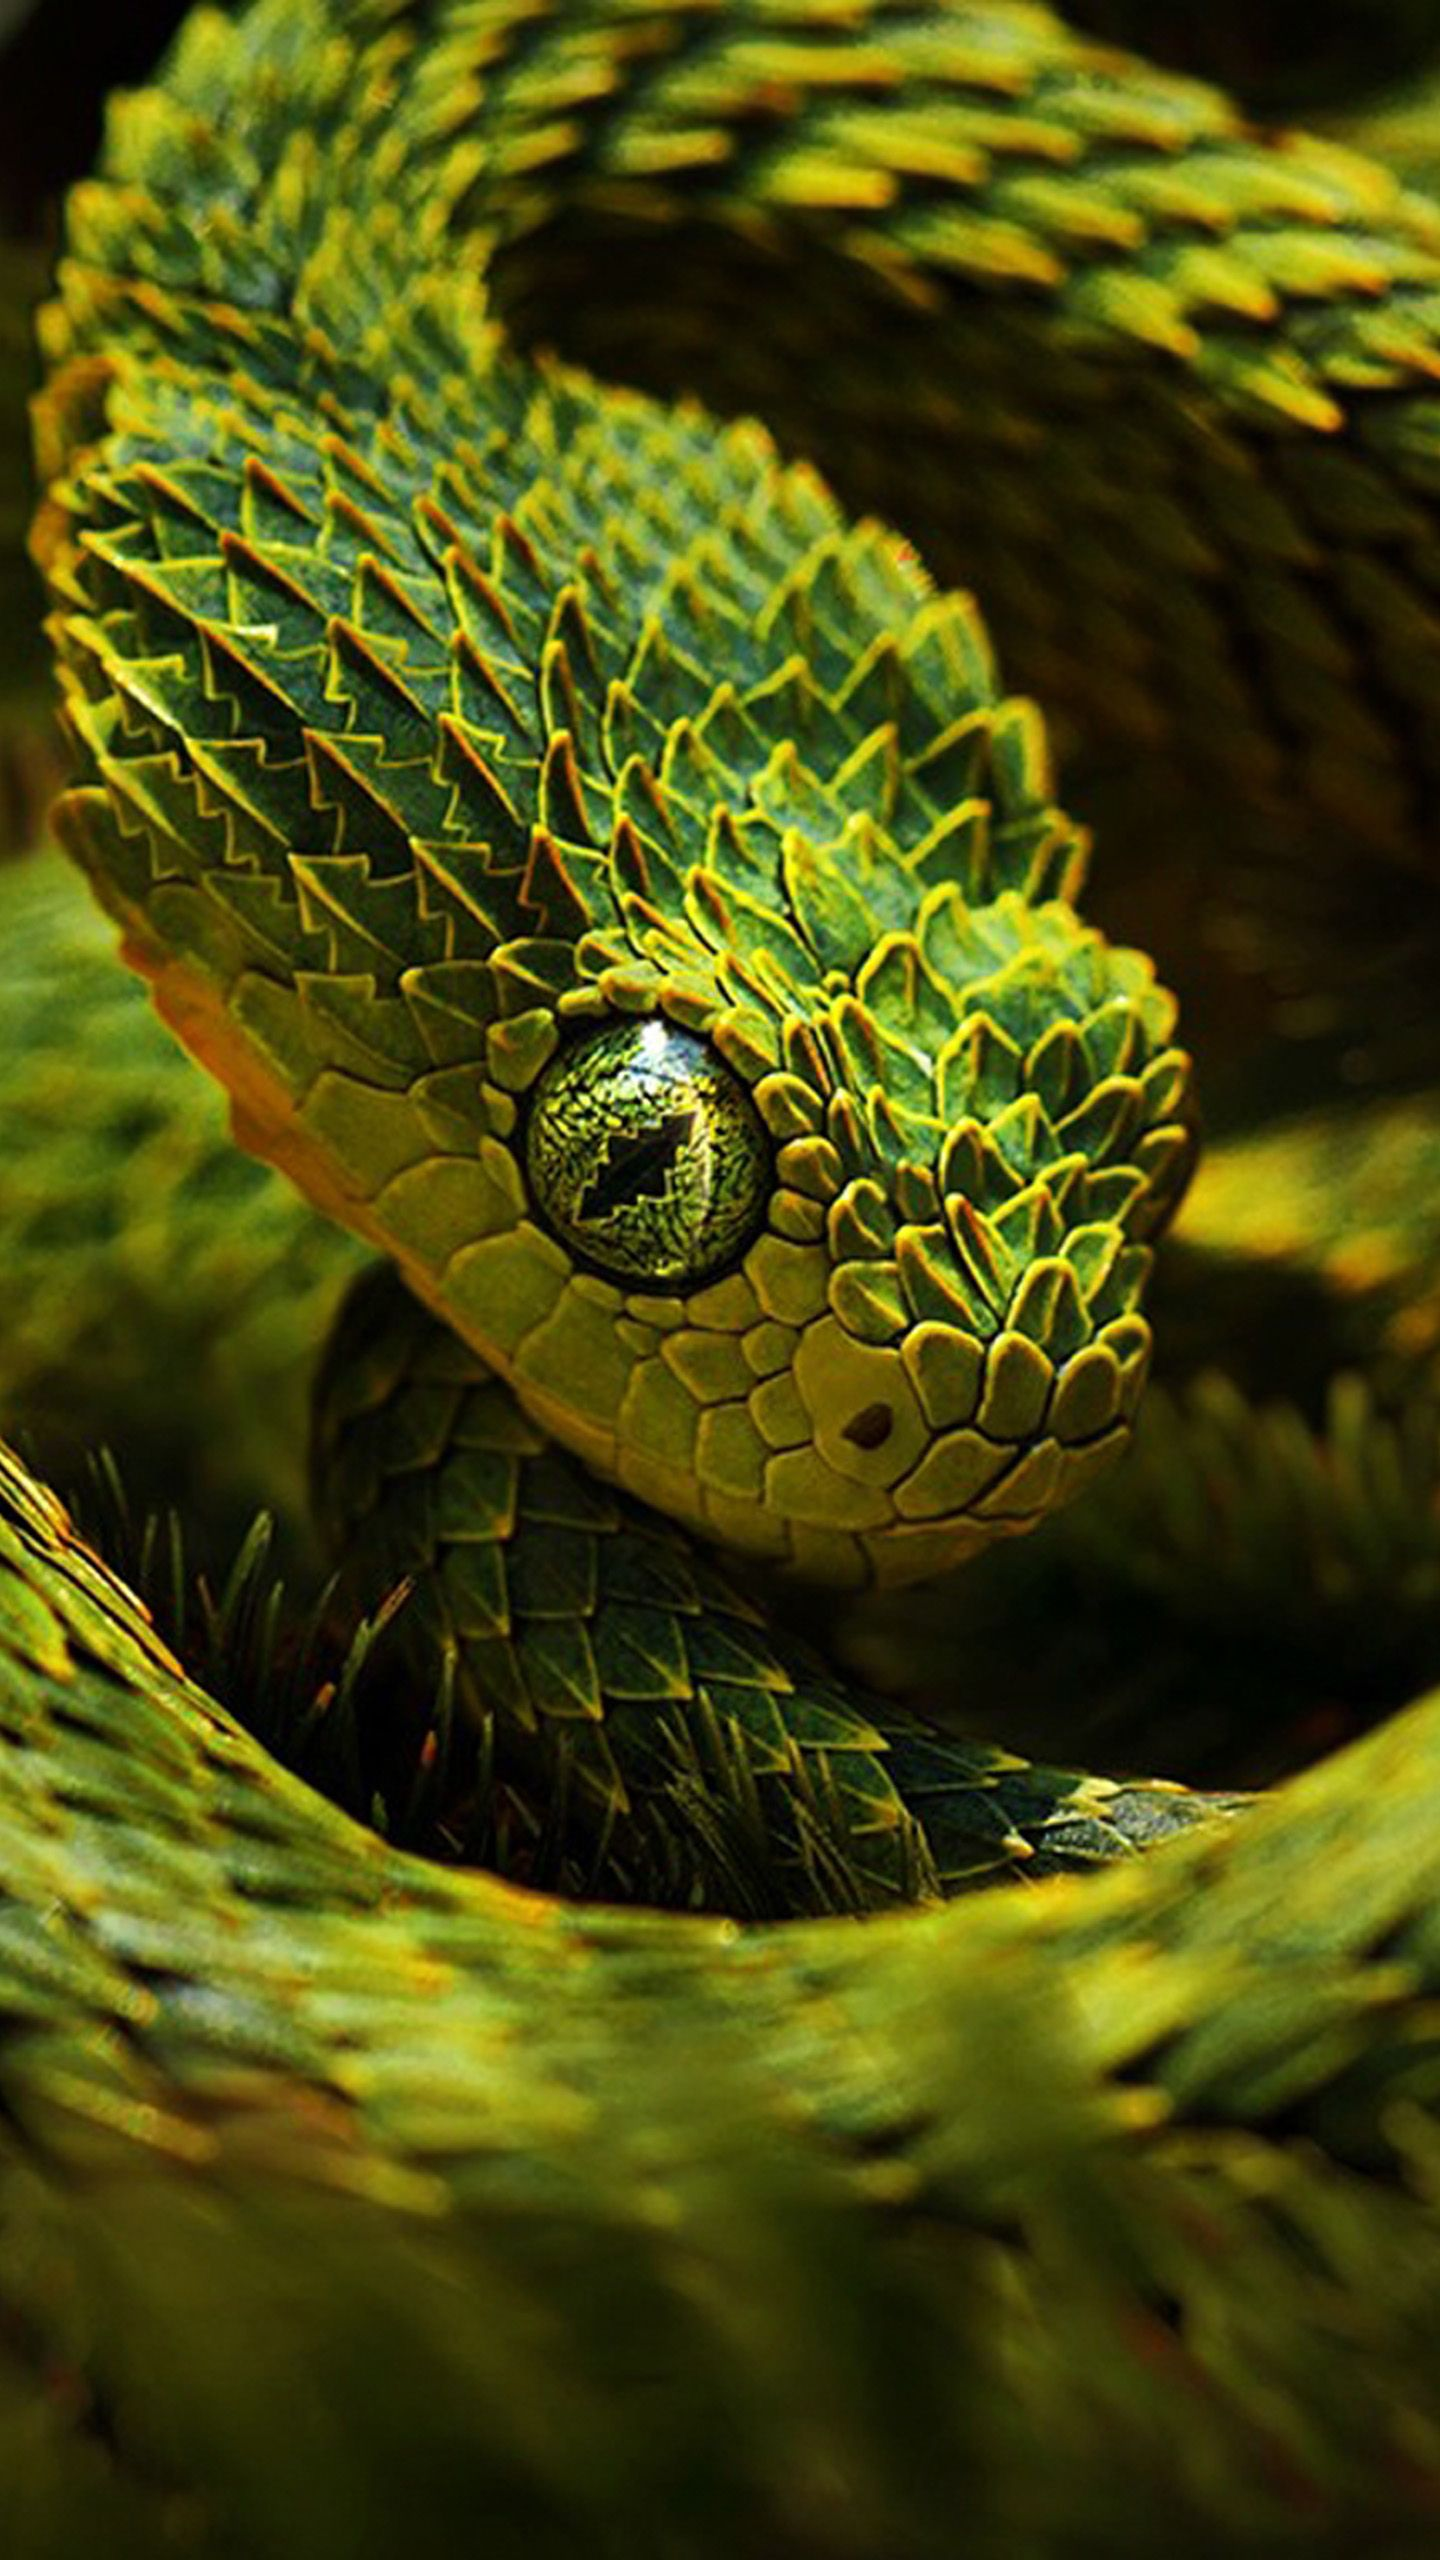 Snake Iphone Wallpapers Top Free Snake Iphone Backgrounds